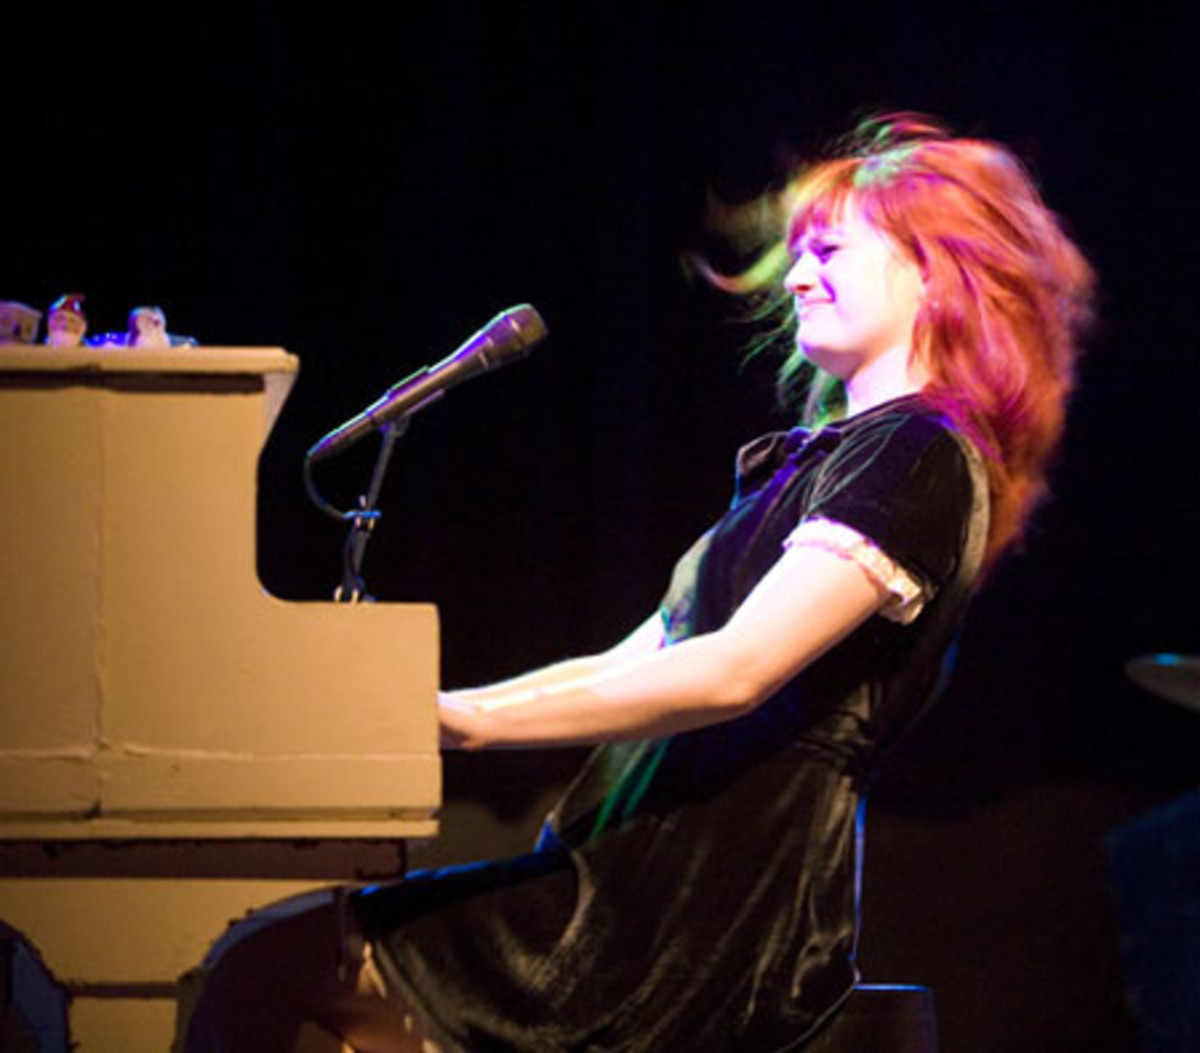 Allison Sudol rocks out on piano.  Image courtesy Btibbets and Wikipedia.